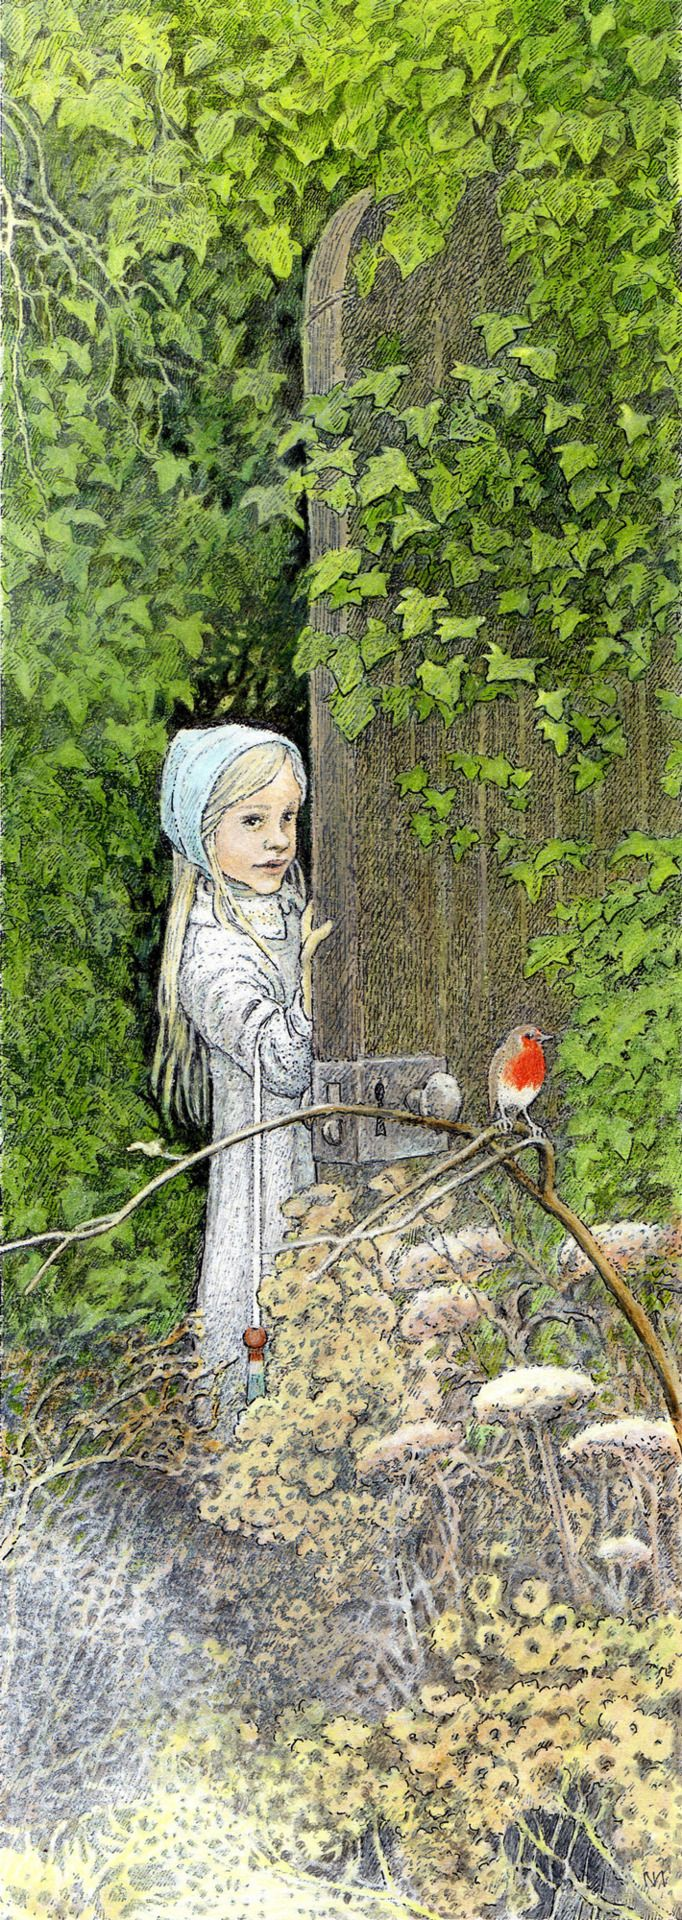 Why is nature-especially the garden- important in children's literature?